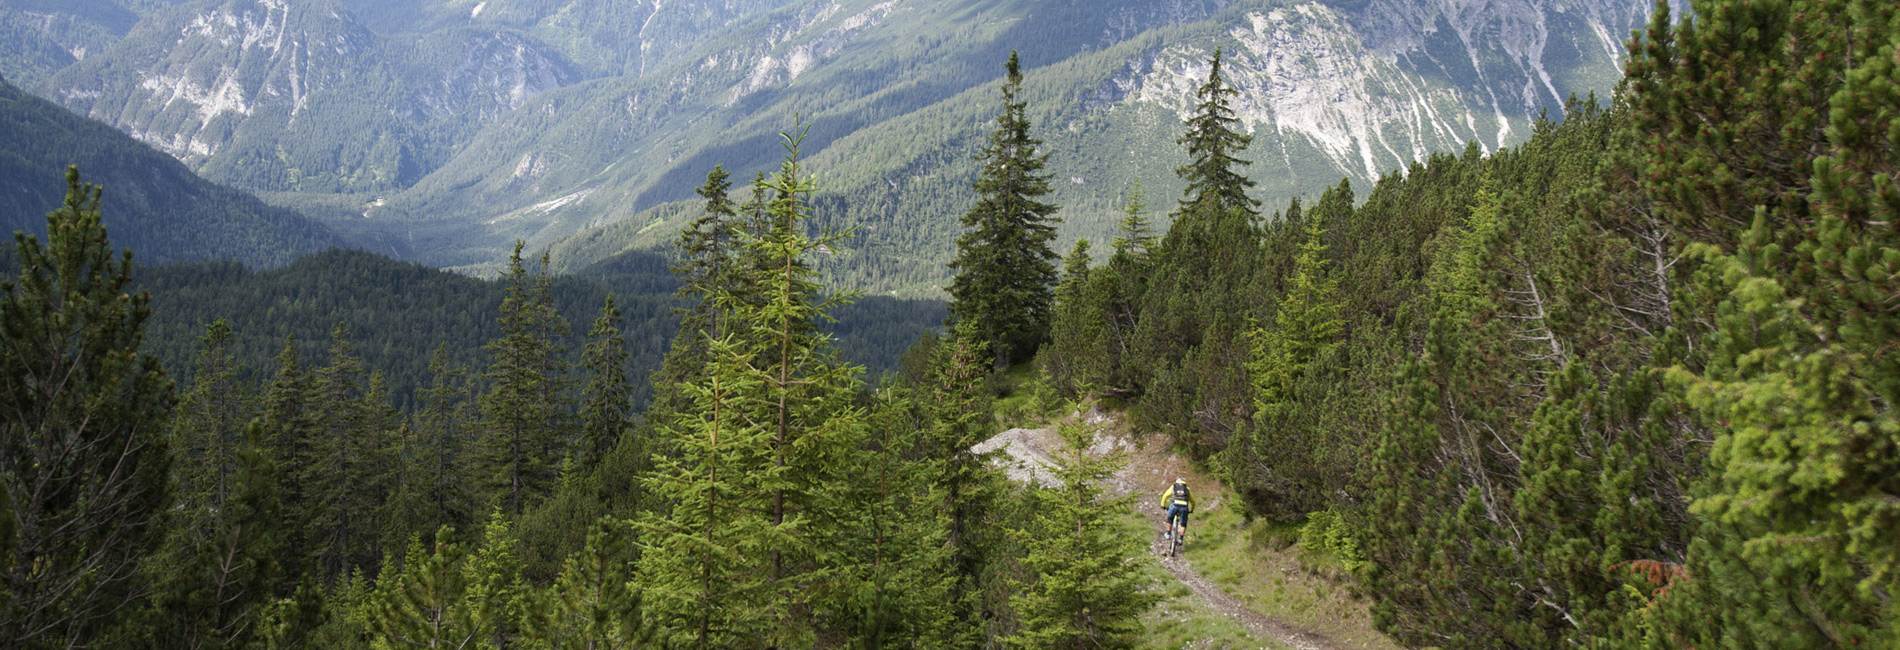 Endlose Trails im Bikepark Lermoos in Tirol - copyright Tirol Werbung